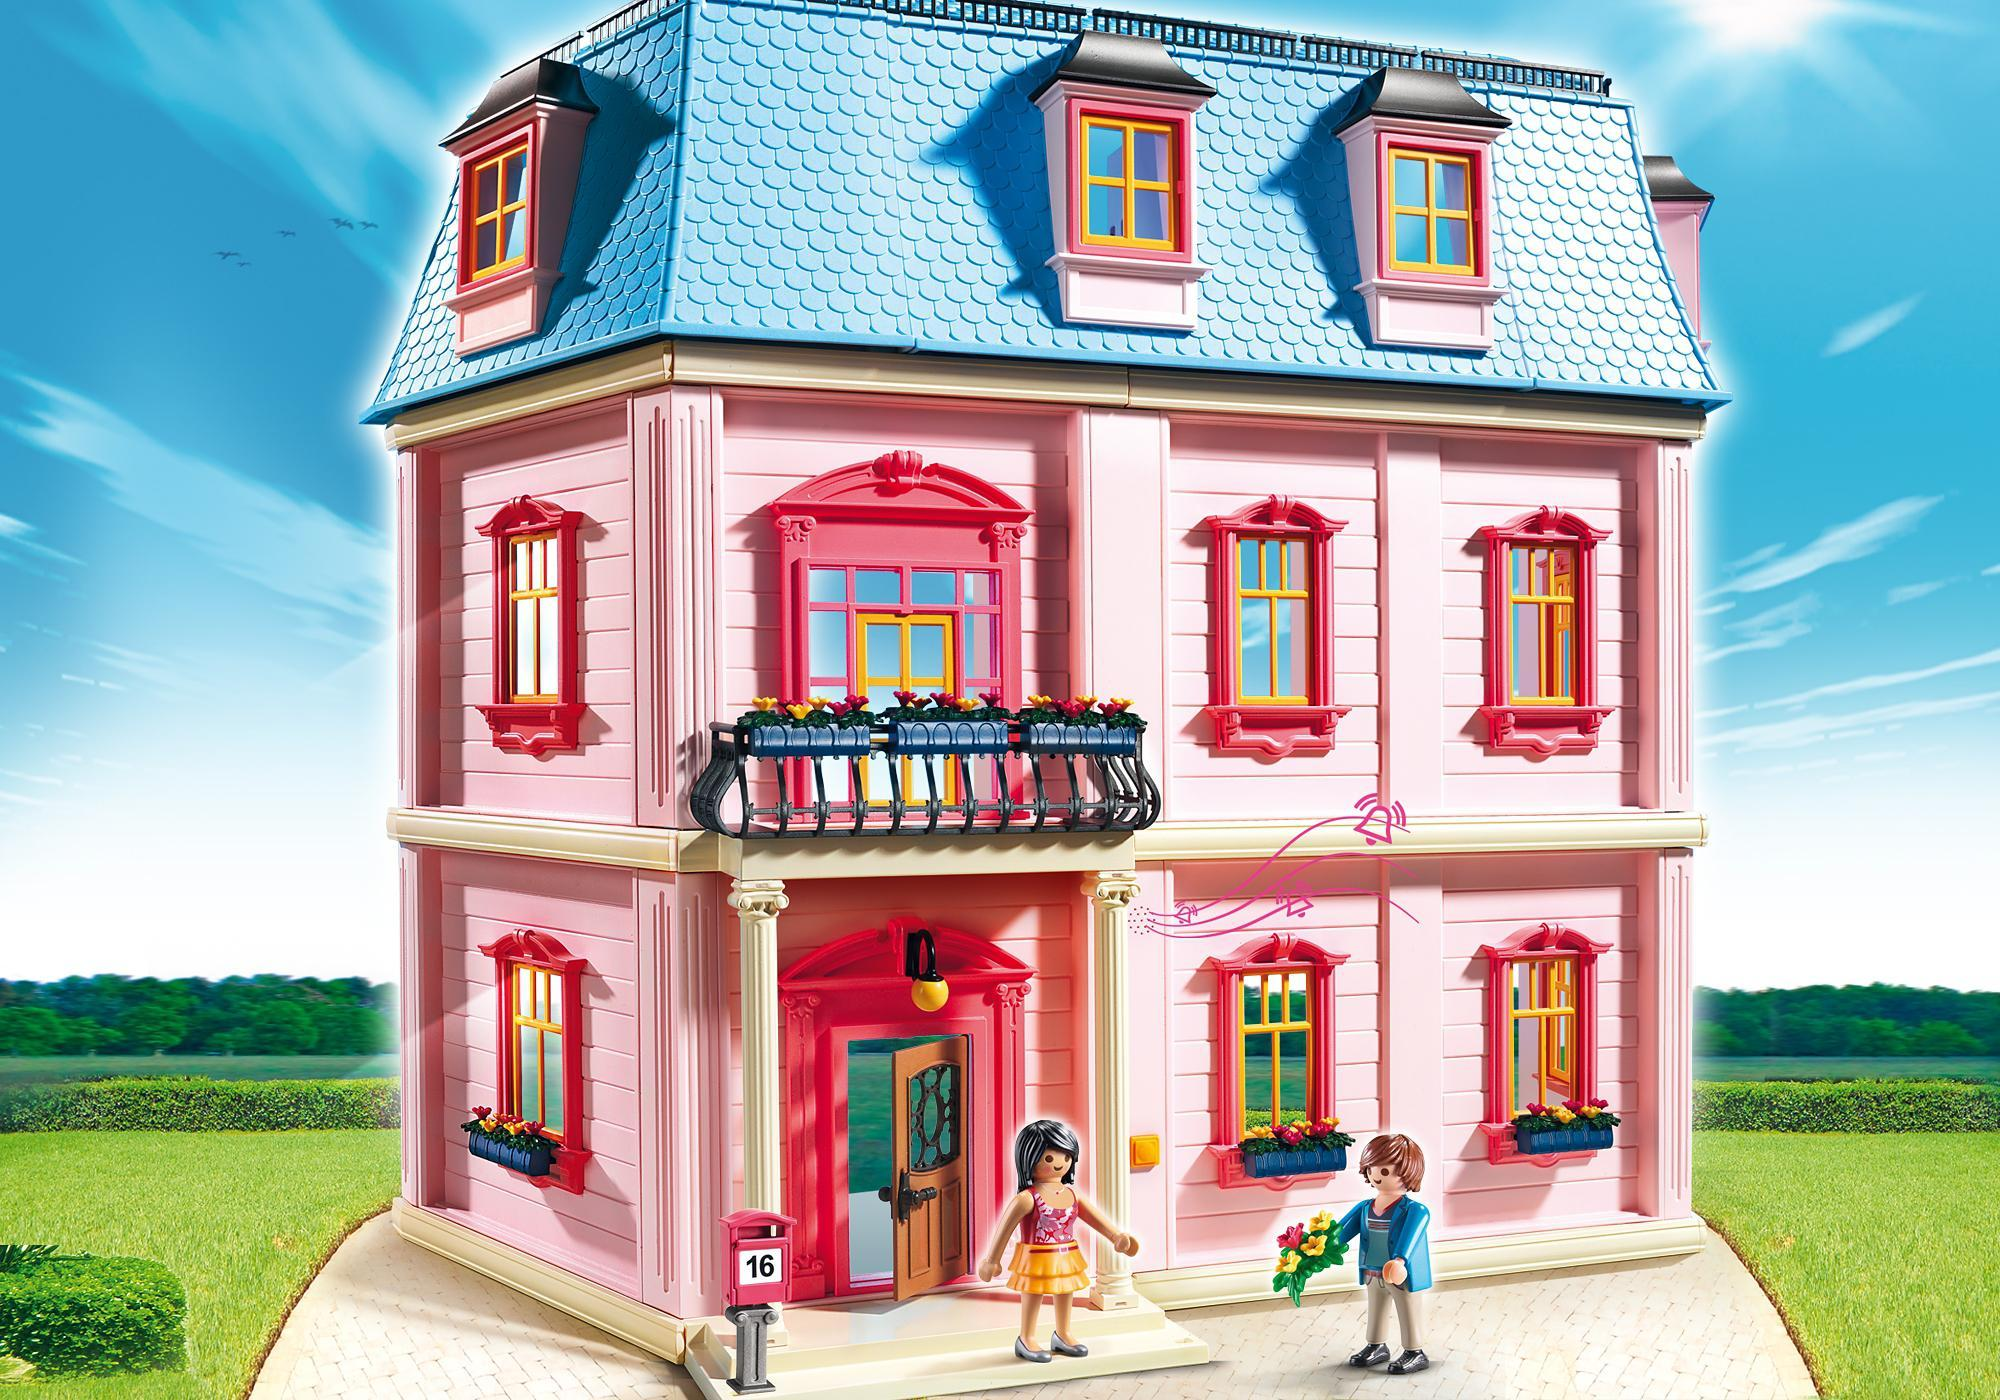 Eclairage Maison Playmobil Maison Traditionnelle 5303 Playmobil France